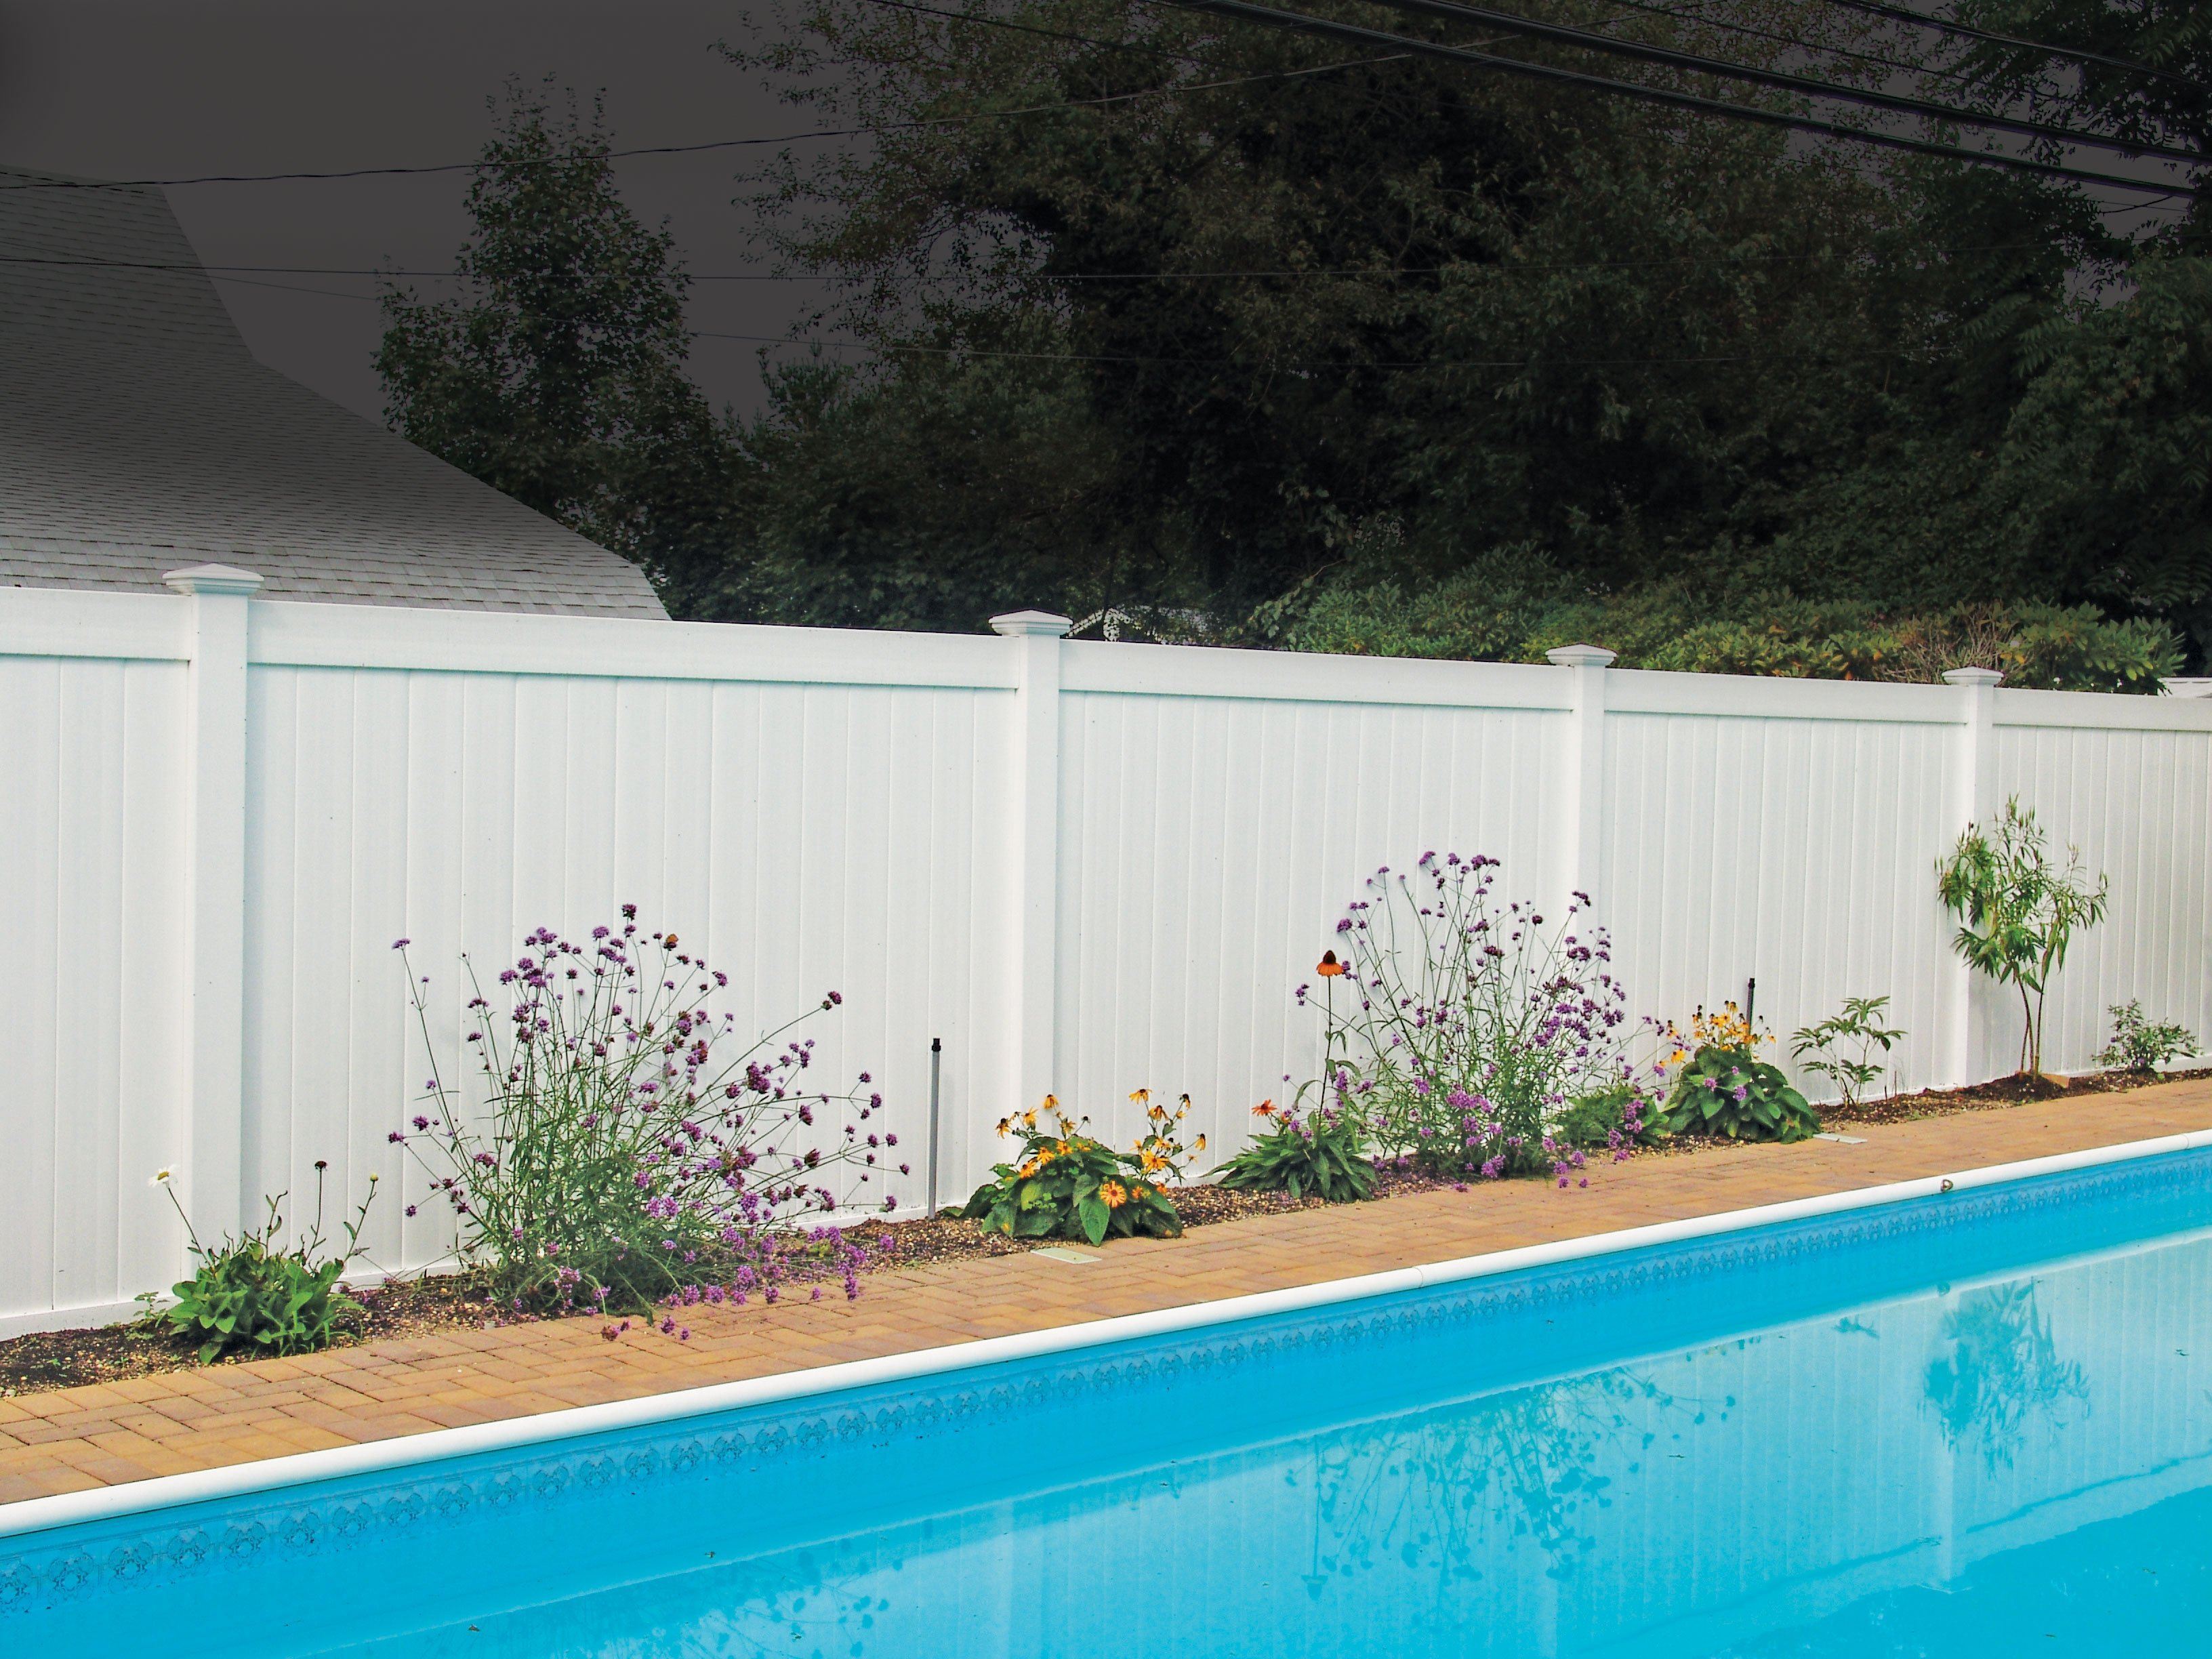 Amendola\'s Fence | Long Island\'s Leading Fence Supplier!